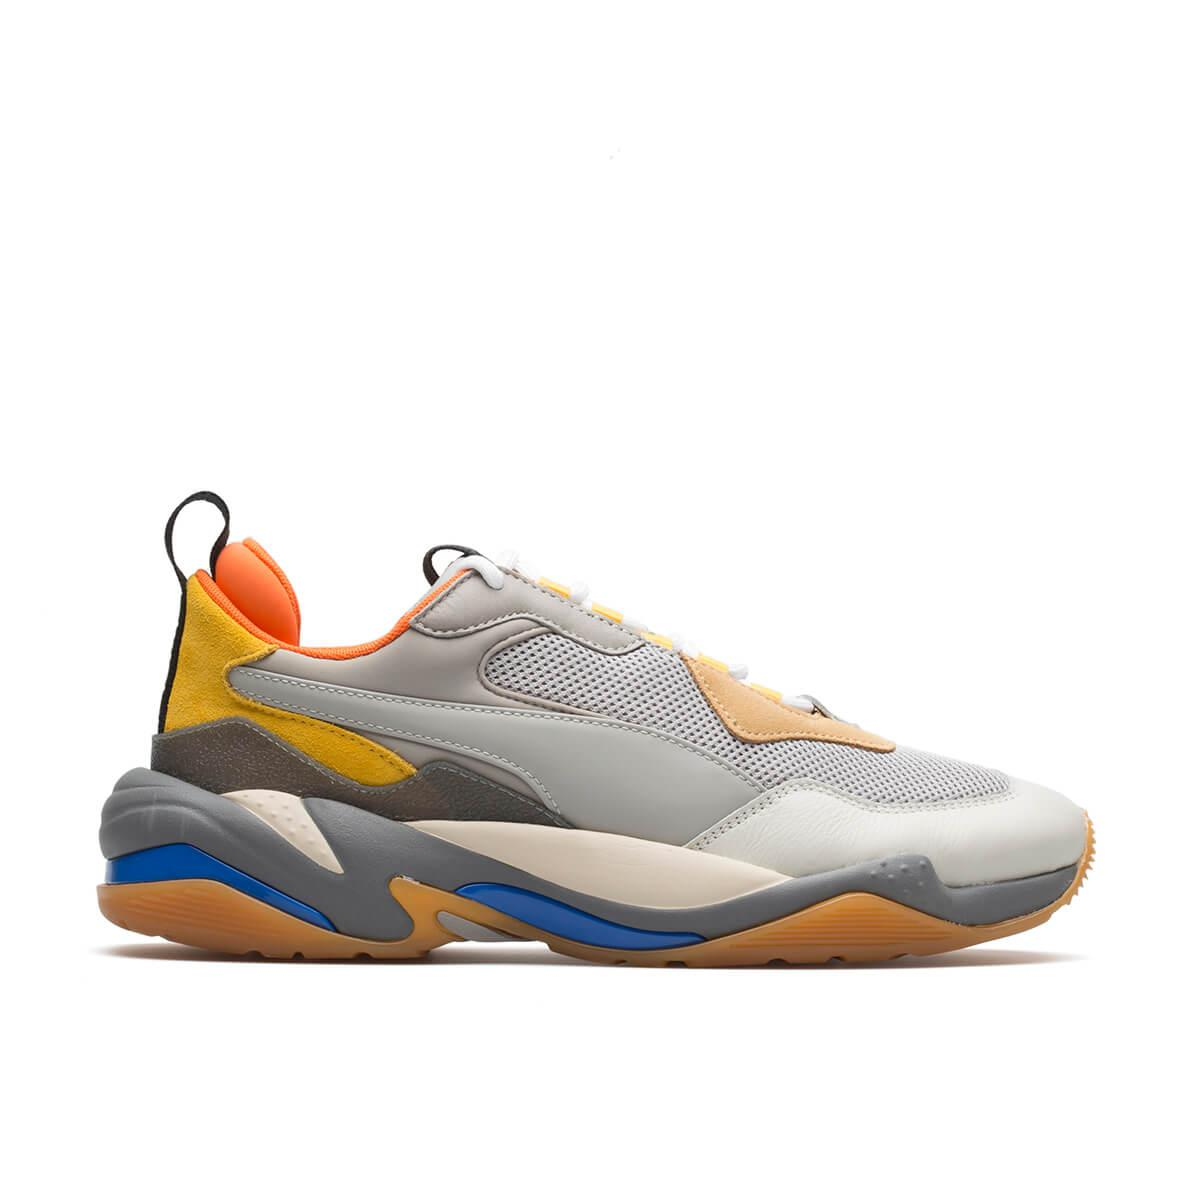 4220c7798ef Puma Thunder Spectra Sneakers in Gray for Men - Save ...